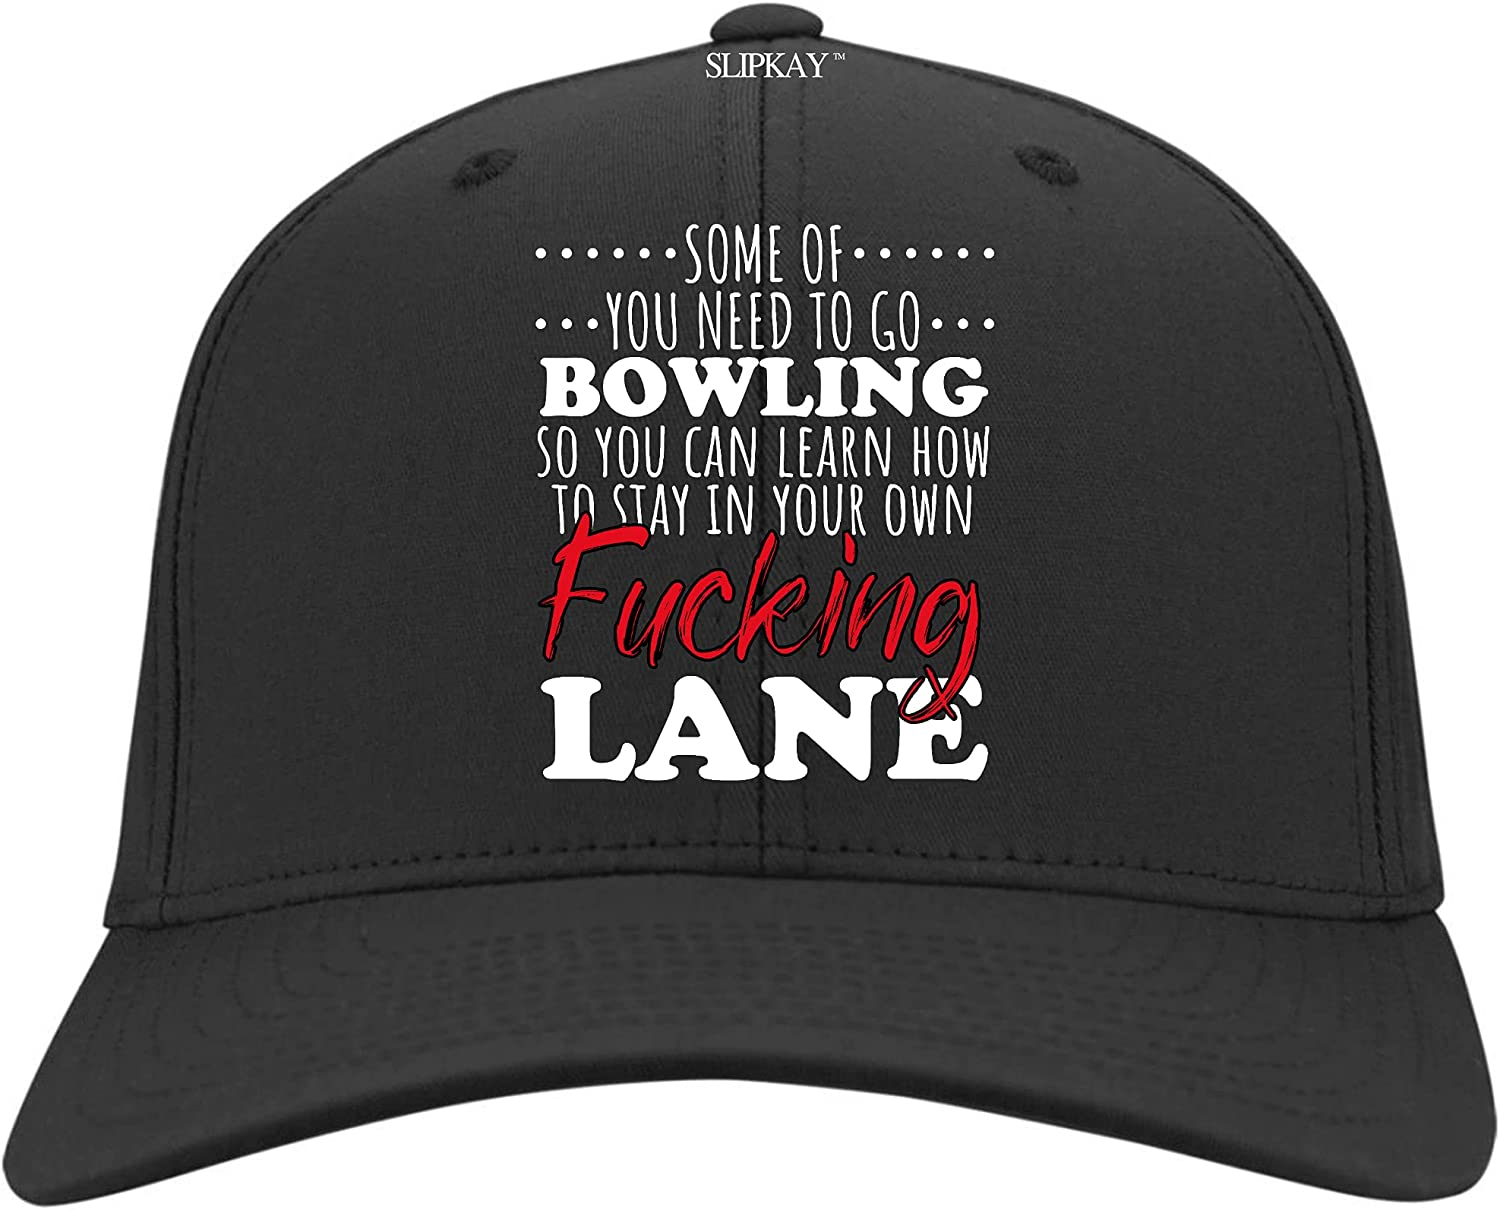 Some of You Need to Go Bowling So You Can Learn How to Stay in Your Lane Hat,Twill Cap